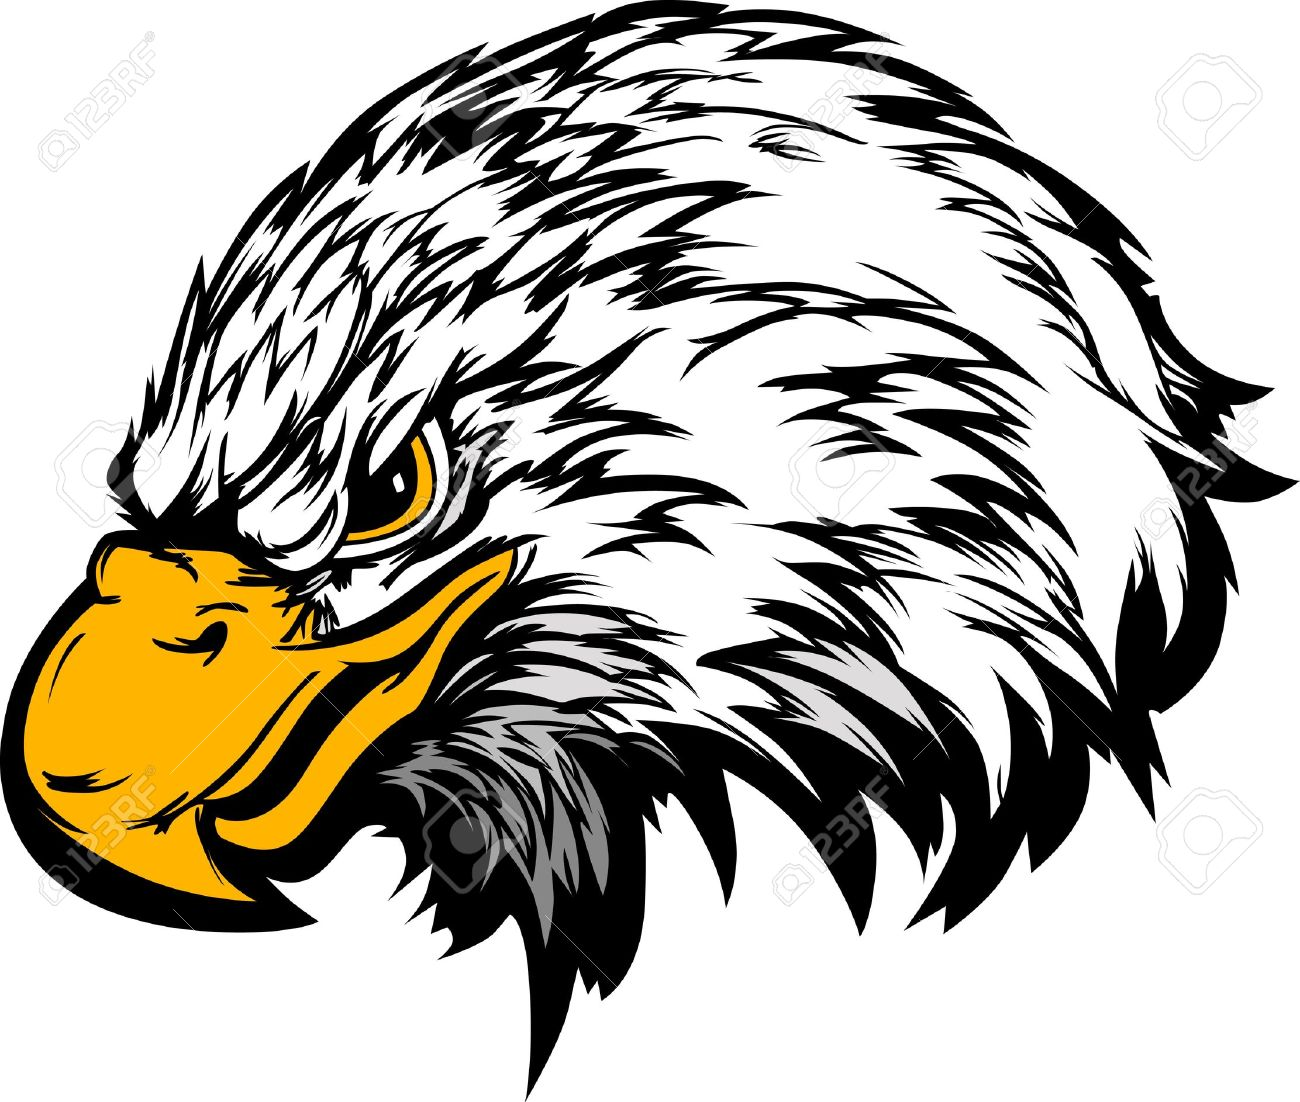 6 784 eagle head cliparts stock vector and royalty free eagle head rh 123rf com eagle head mascot clipart eagle head clipart free